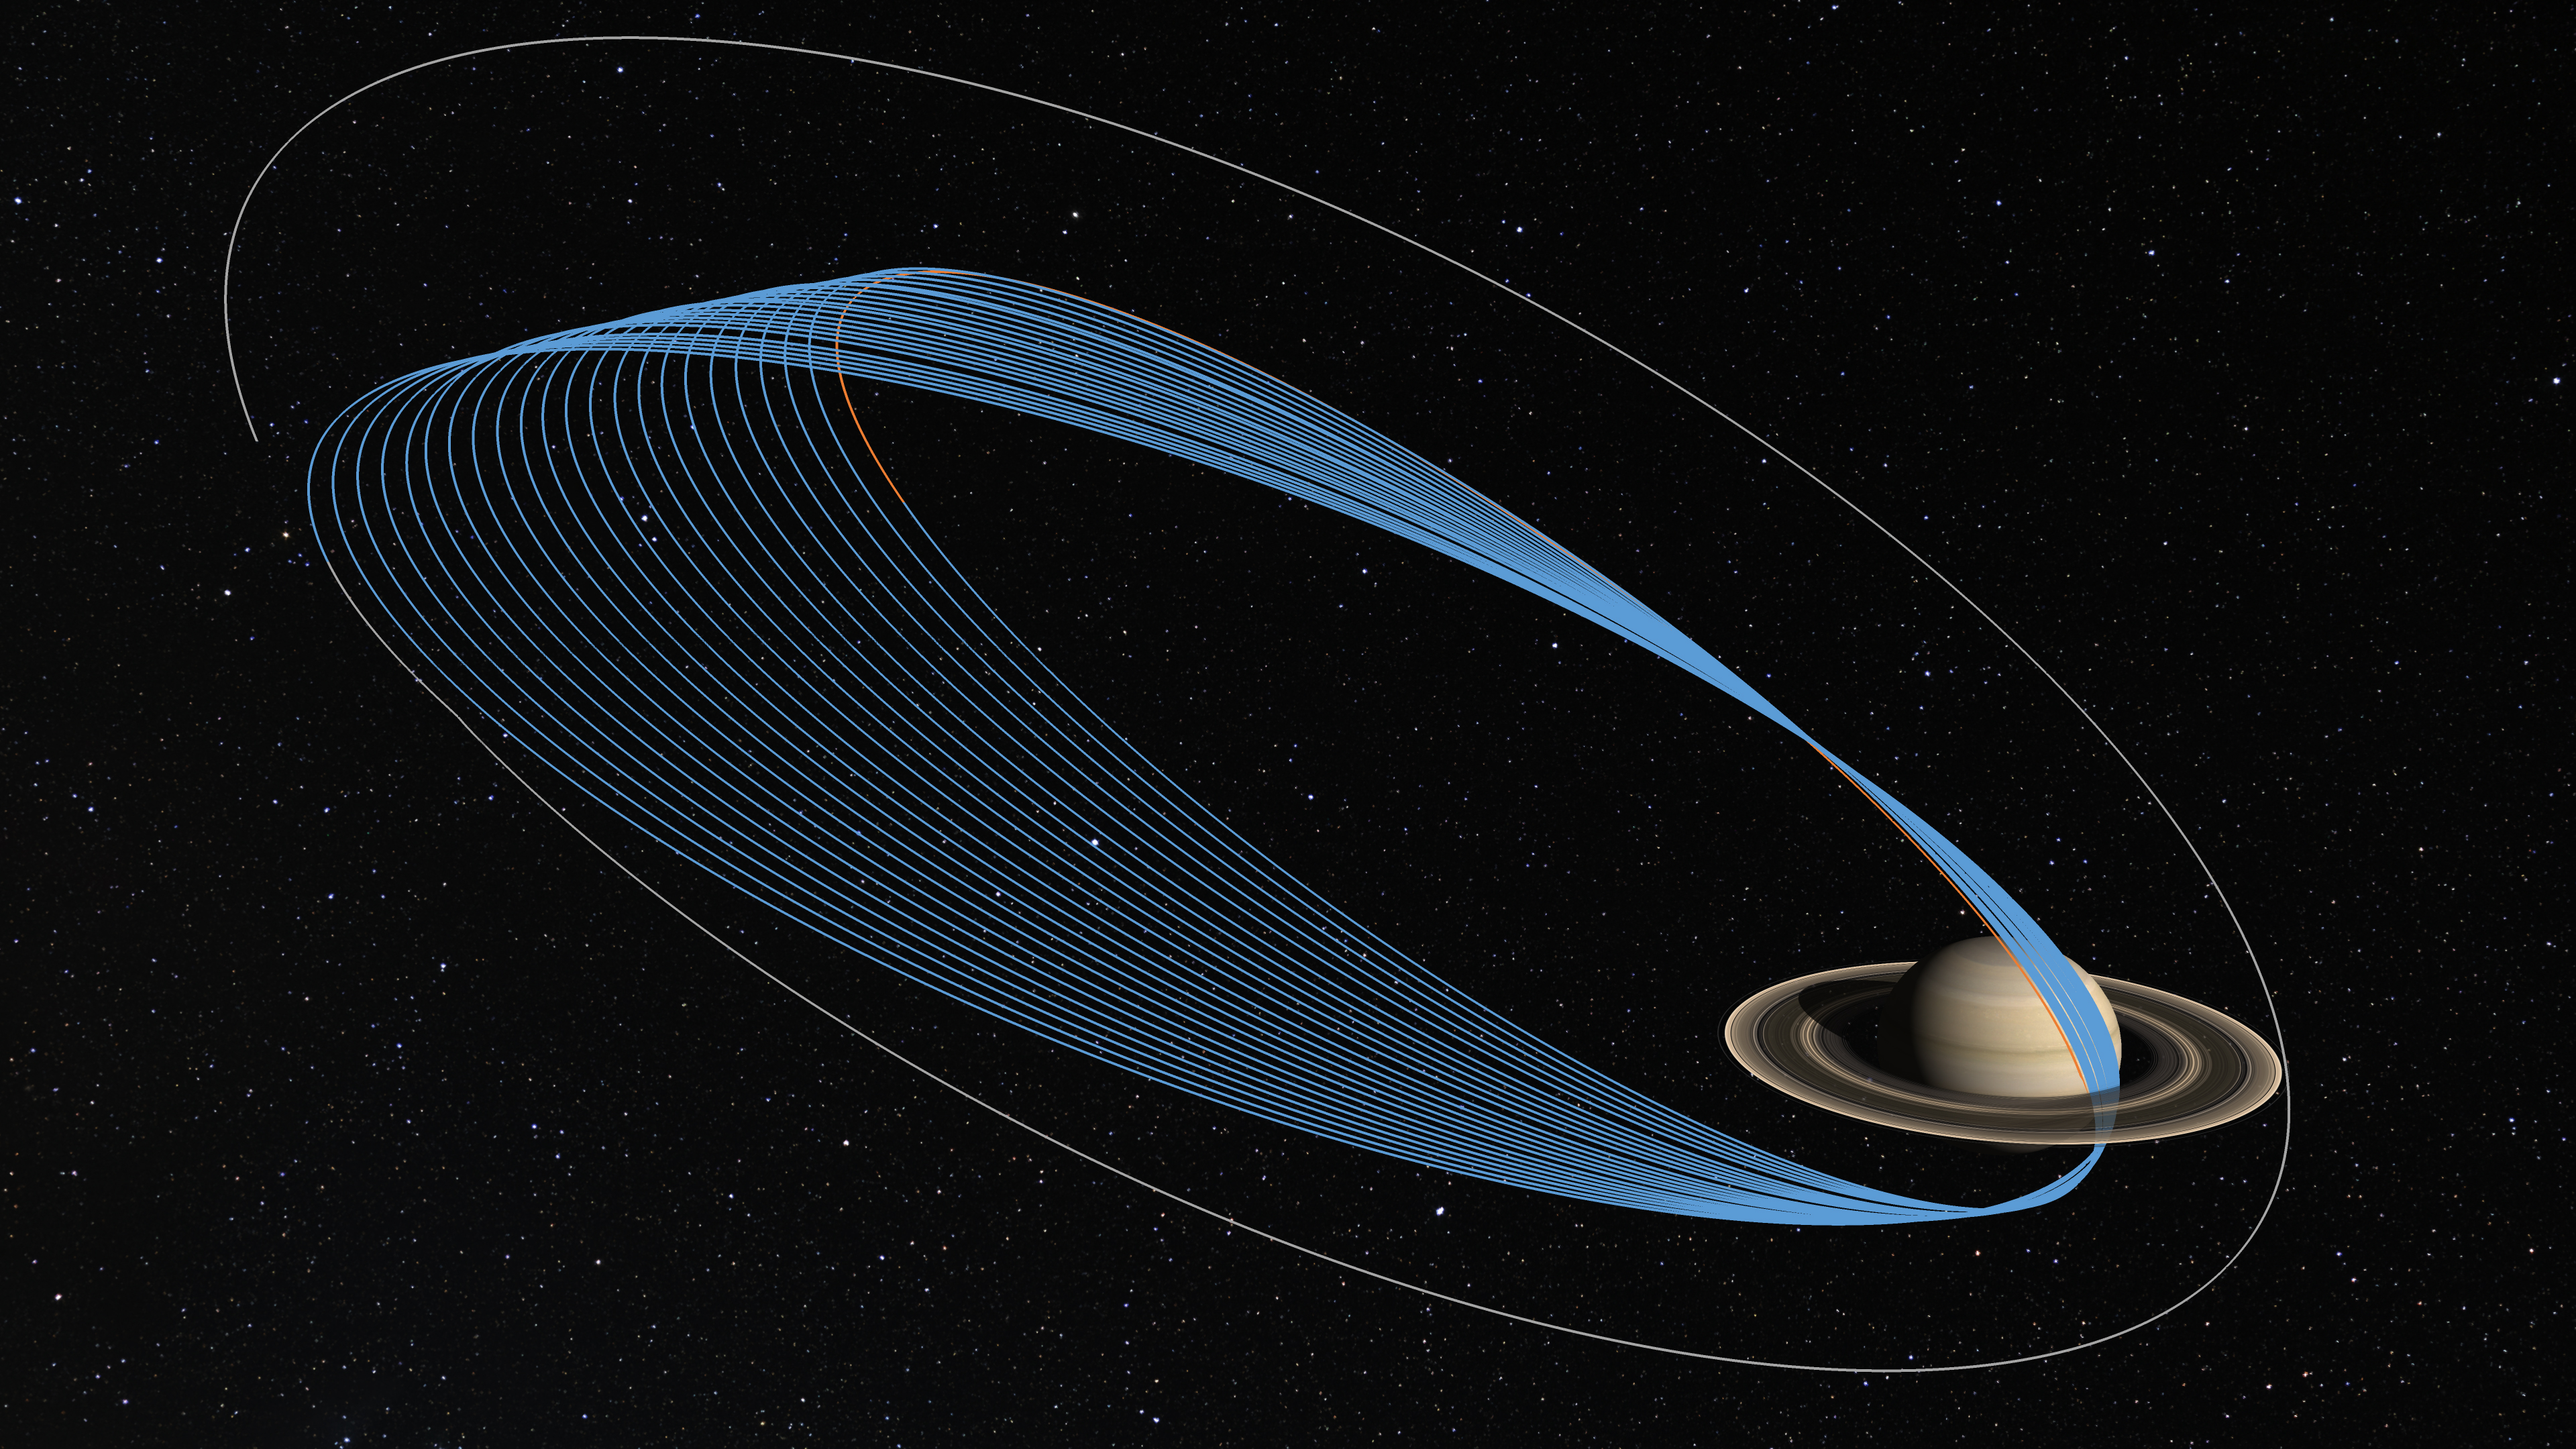 The Cassini spacecraft's dive in between Saturn's rings ...